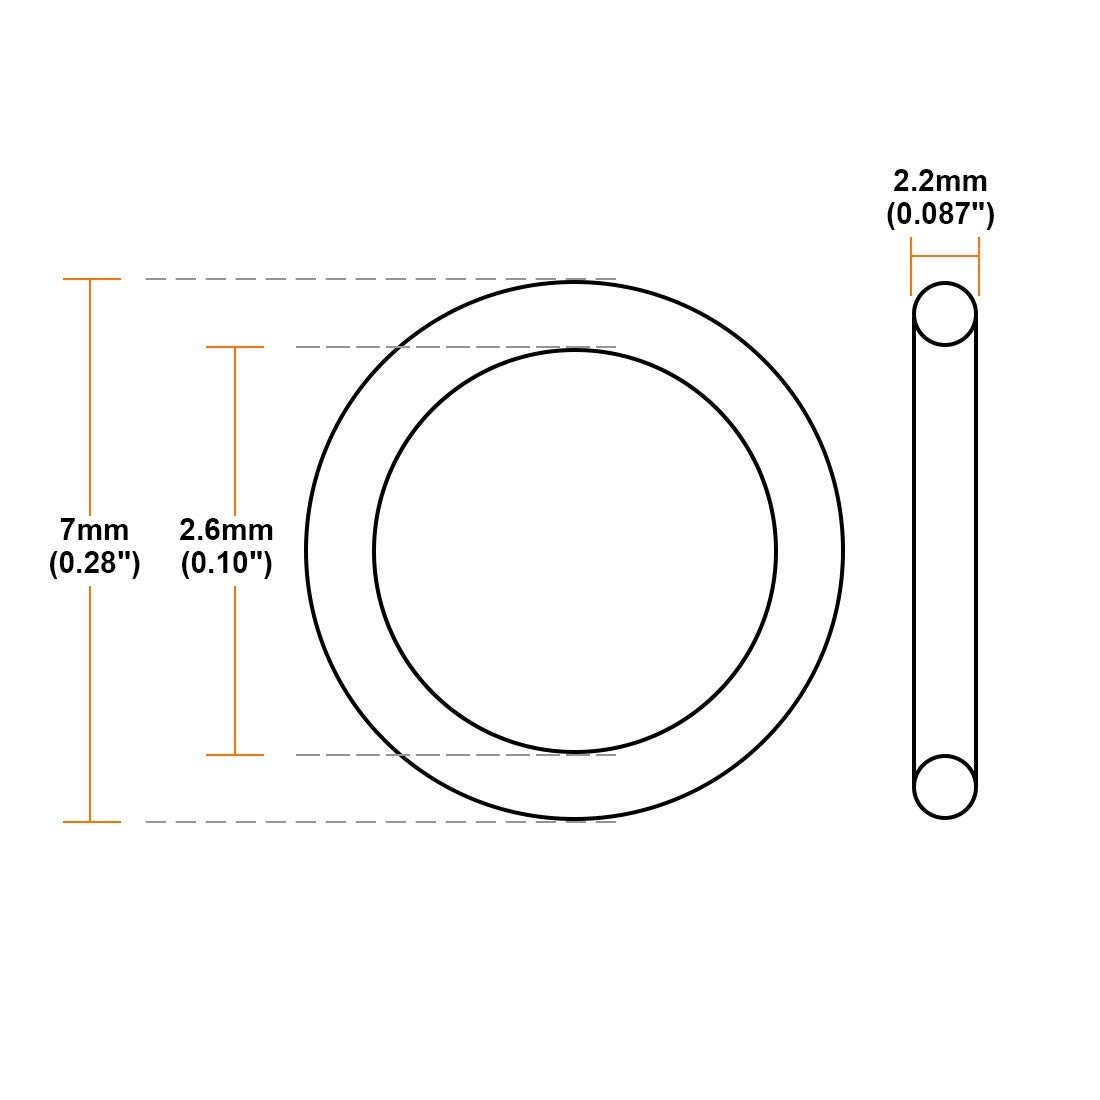 uxcell O-Rings Nitrile Rubber 11.6mm Inner Diameter 16mm OD 2.2mm Width Round Seal Gasket 50 Pcs